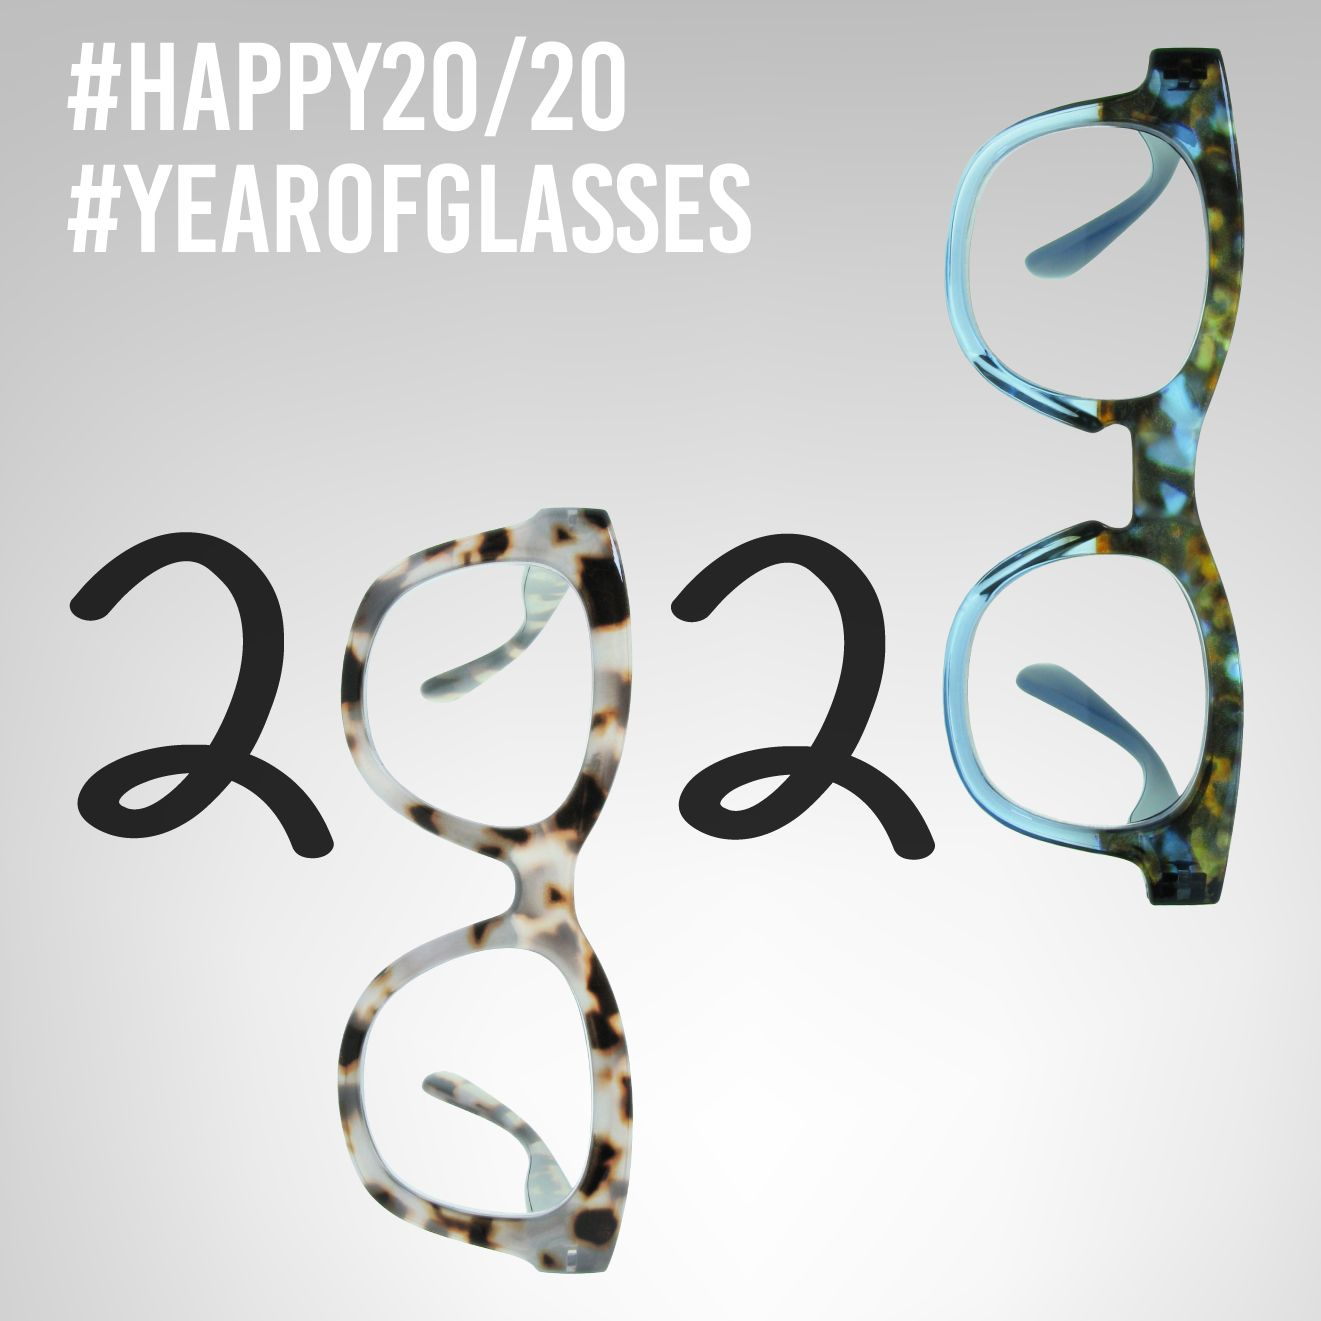 We hope you all have a fantastic 2020! 8) 2020vision